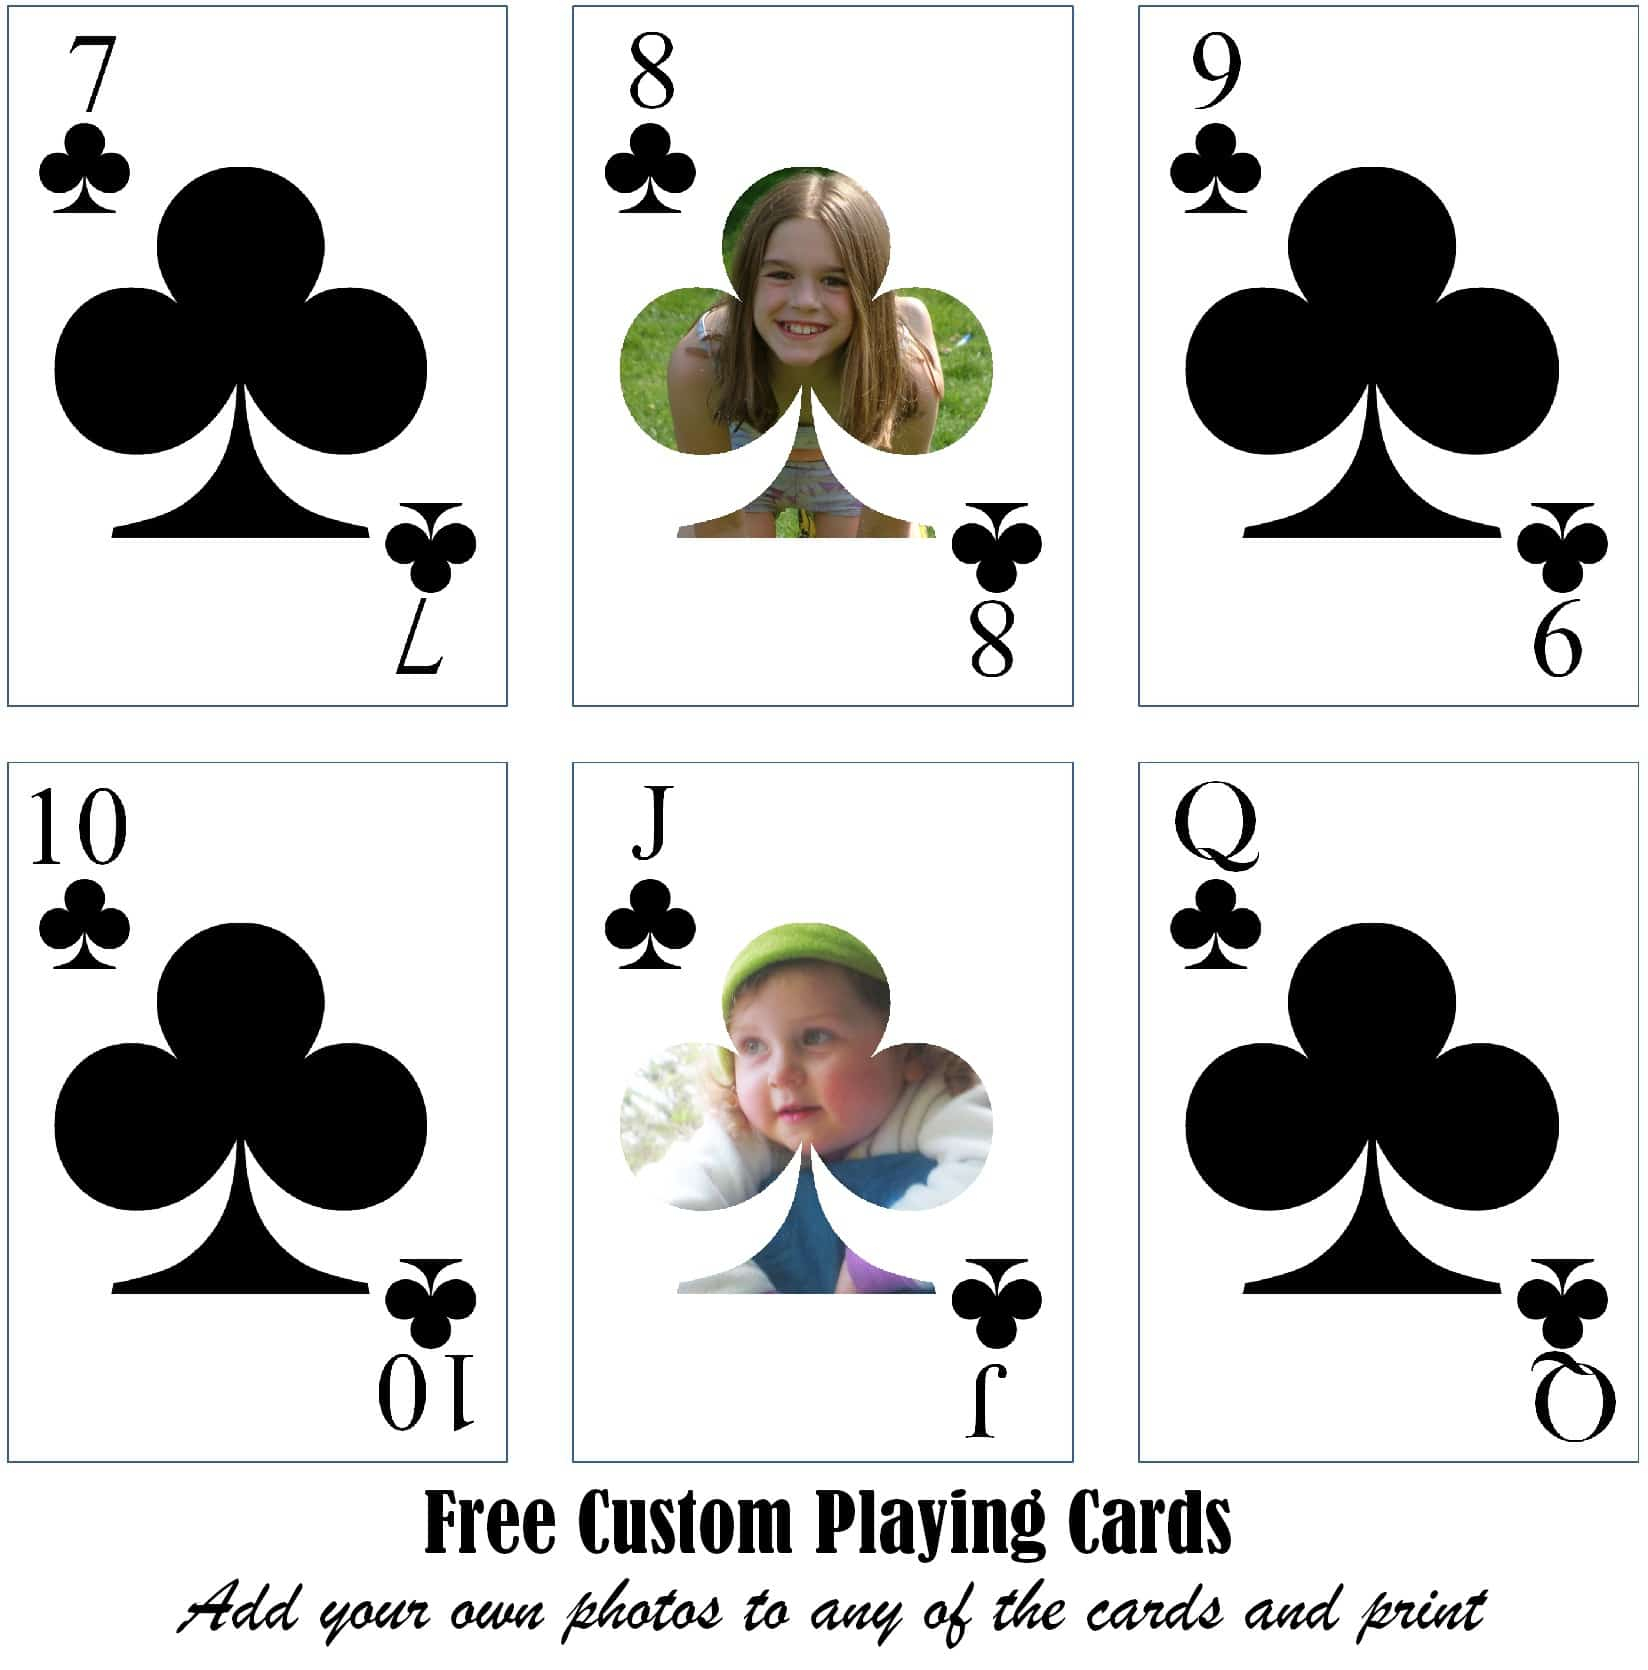 Free Printable Custom Playing Cards | Add Your Photo And/or Text For Custom Playing Card Template